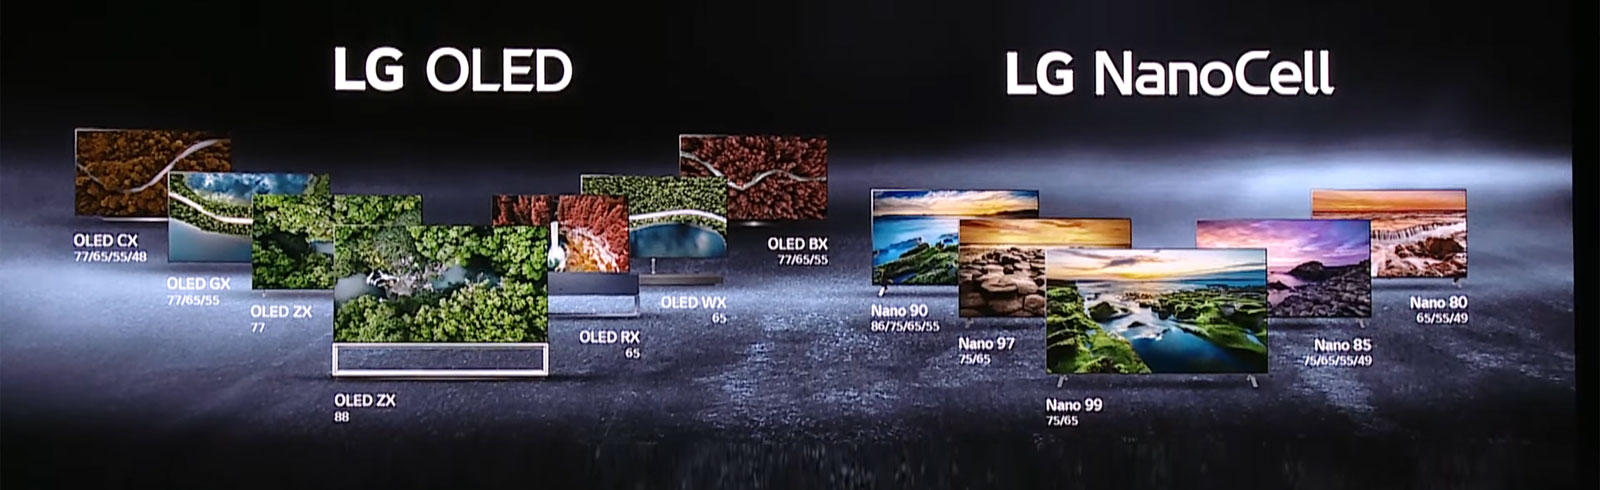 The 2020 LG OLED CX TV series won the Best of CES Award